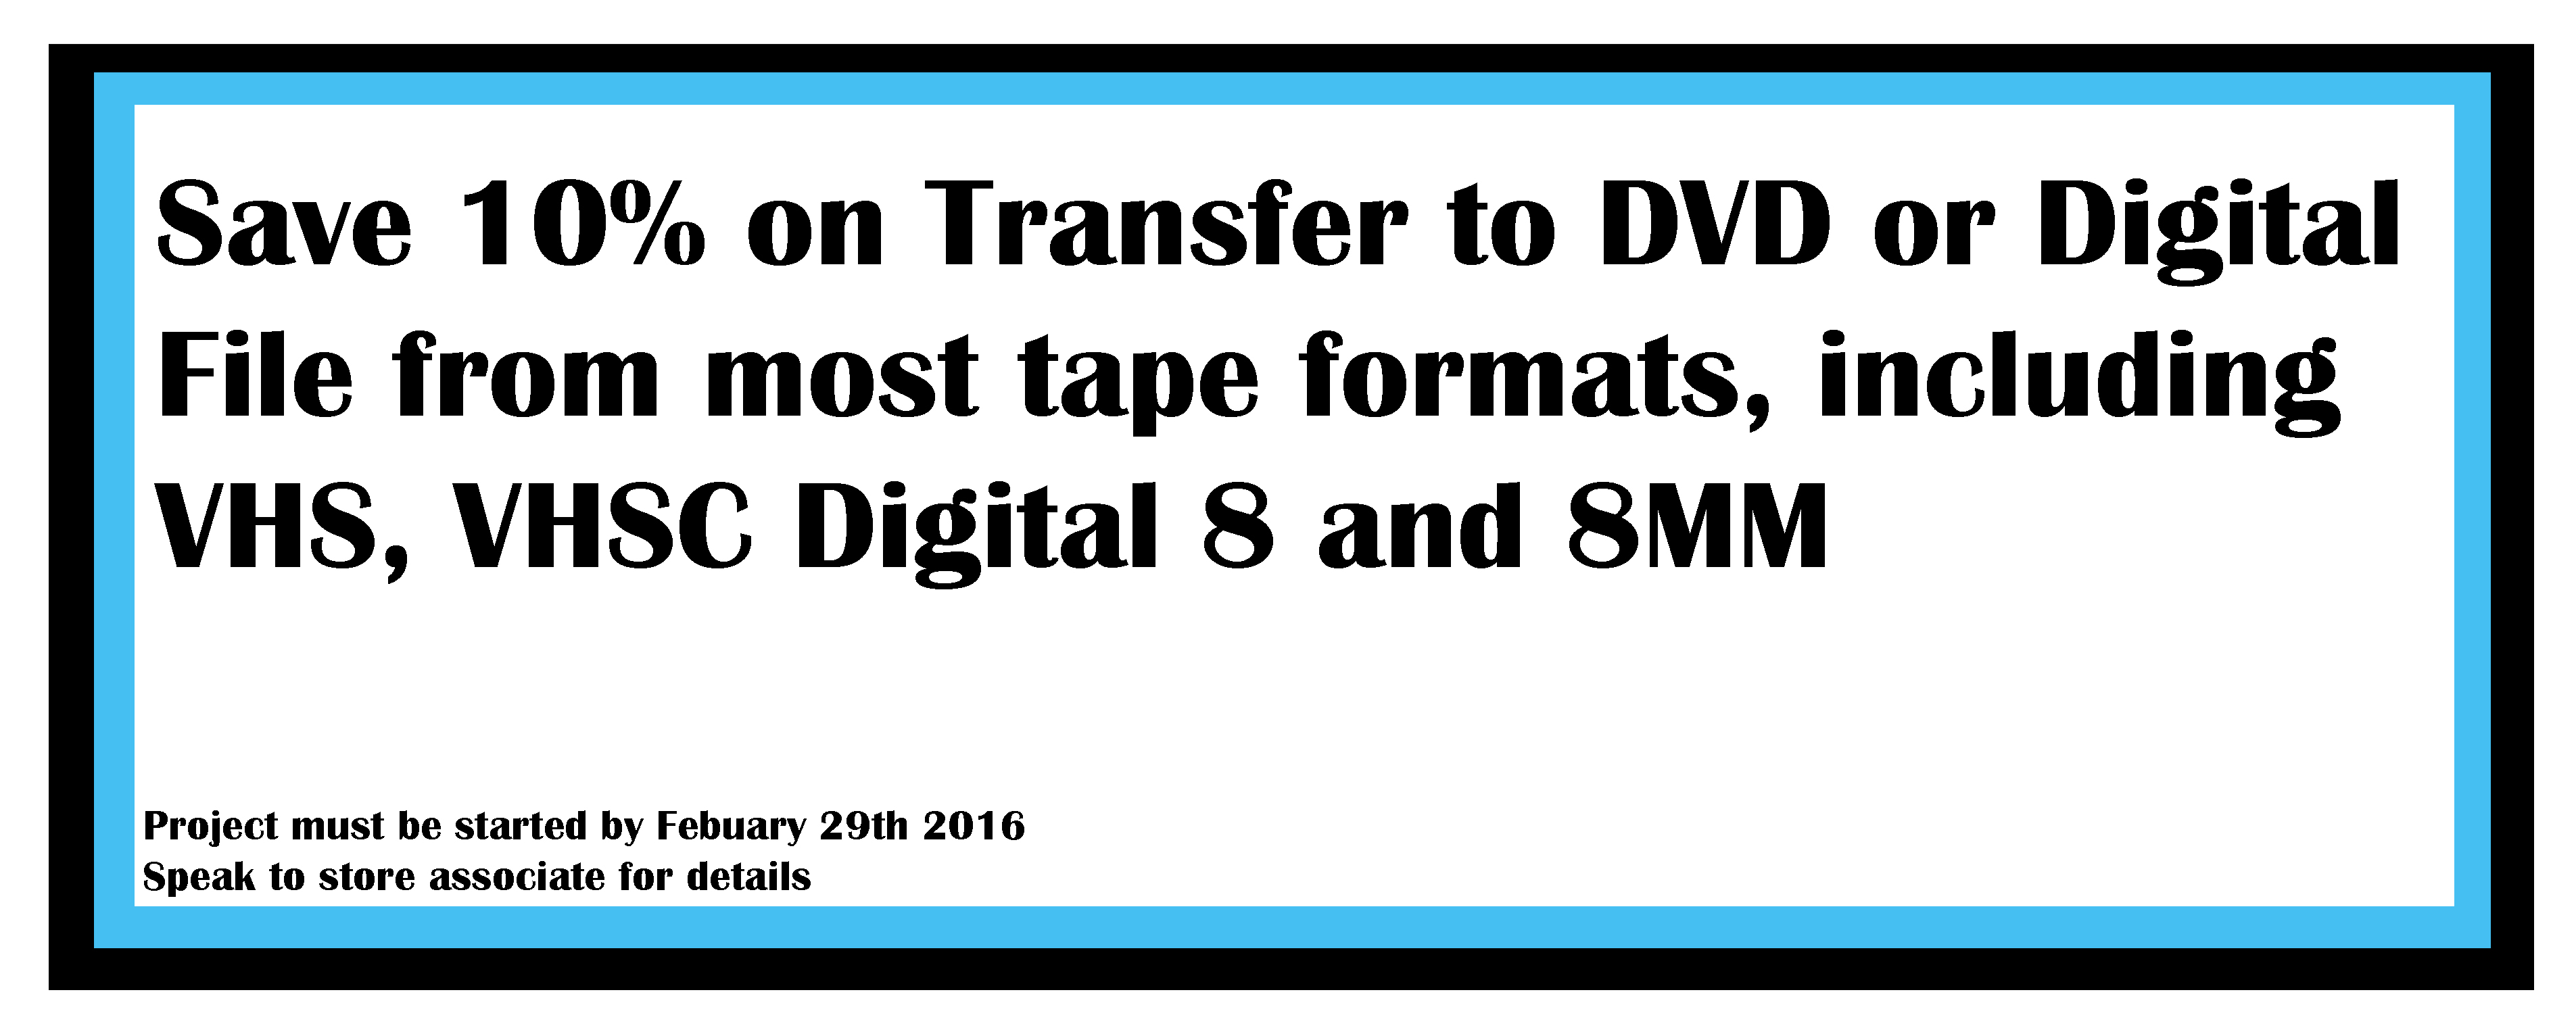 Save 10% on trasfer to dvc or digital file from most tape formats